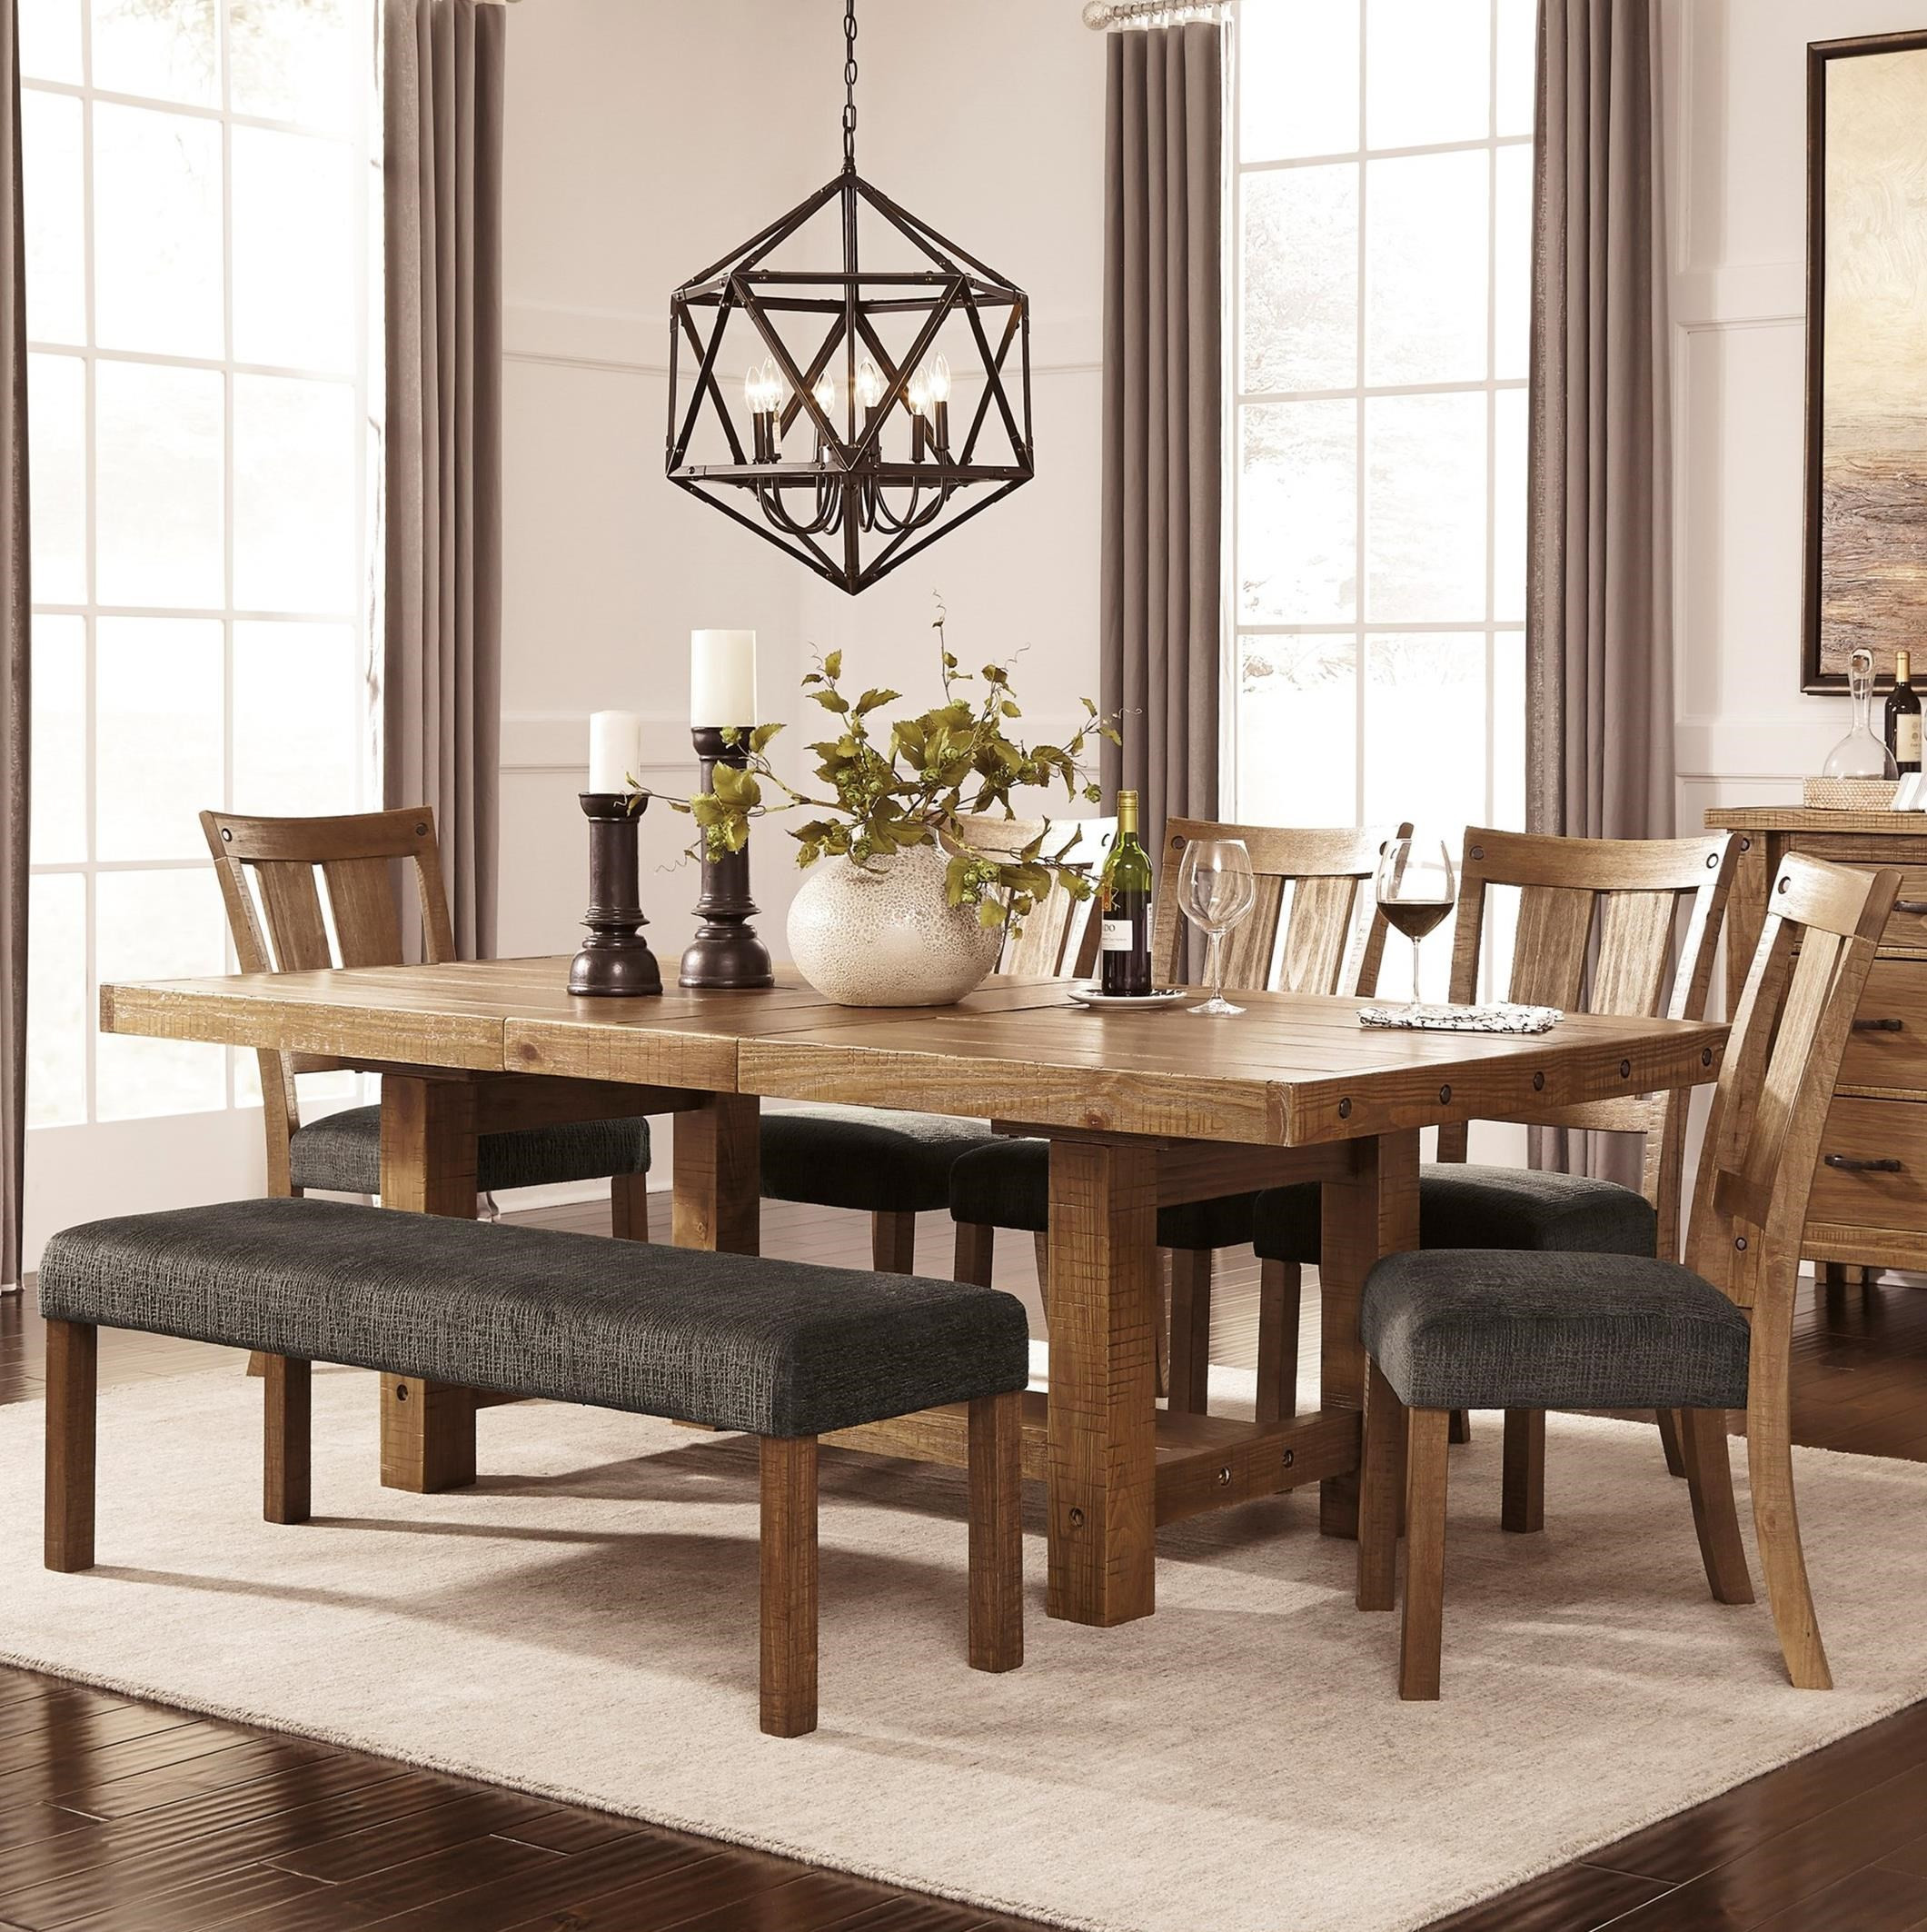 Best ideas about Ashley Furniture Dining Sets . Save or Pin 7 Piece Table & Chair Set with Bench by Signature Design Now.